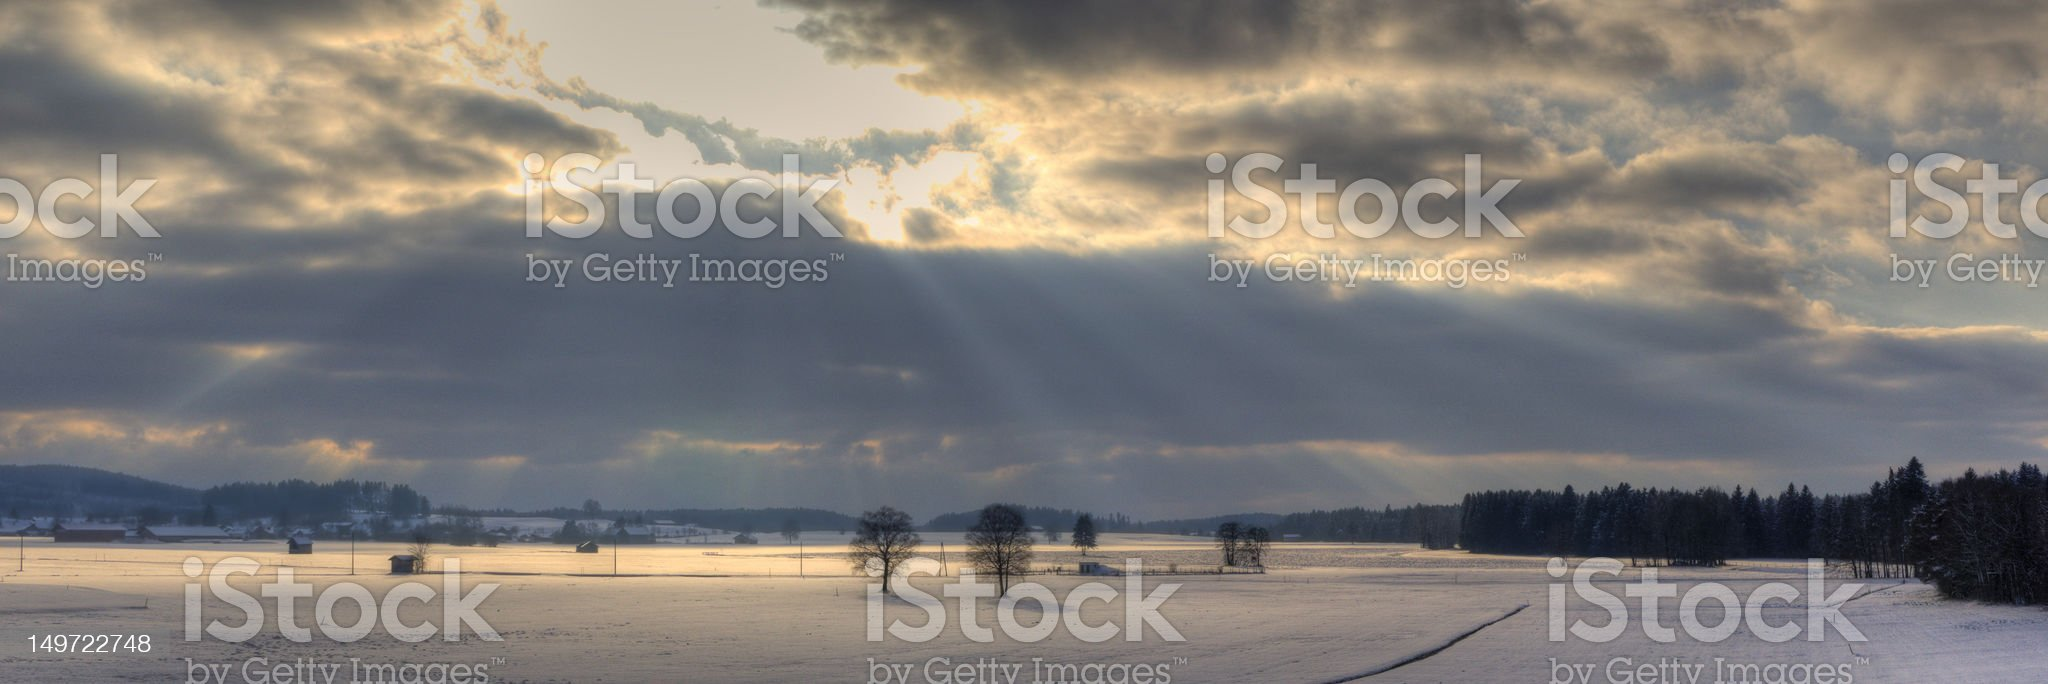 Dramatic HDR sky over Allg?u in Germany Panorama royalty-free stock photo